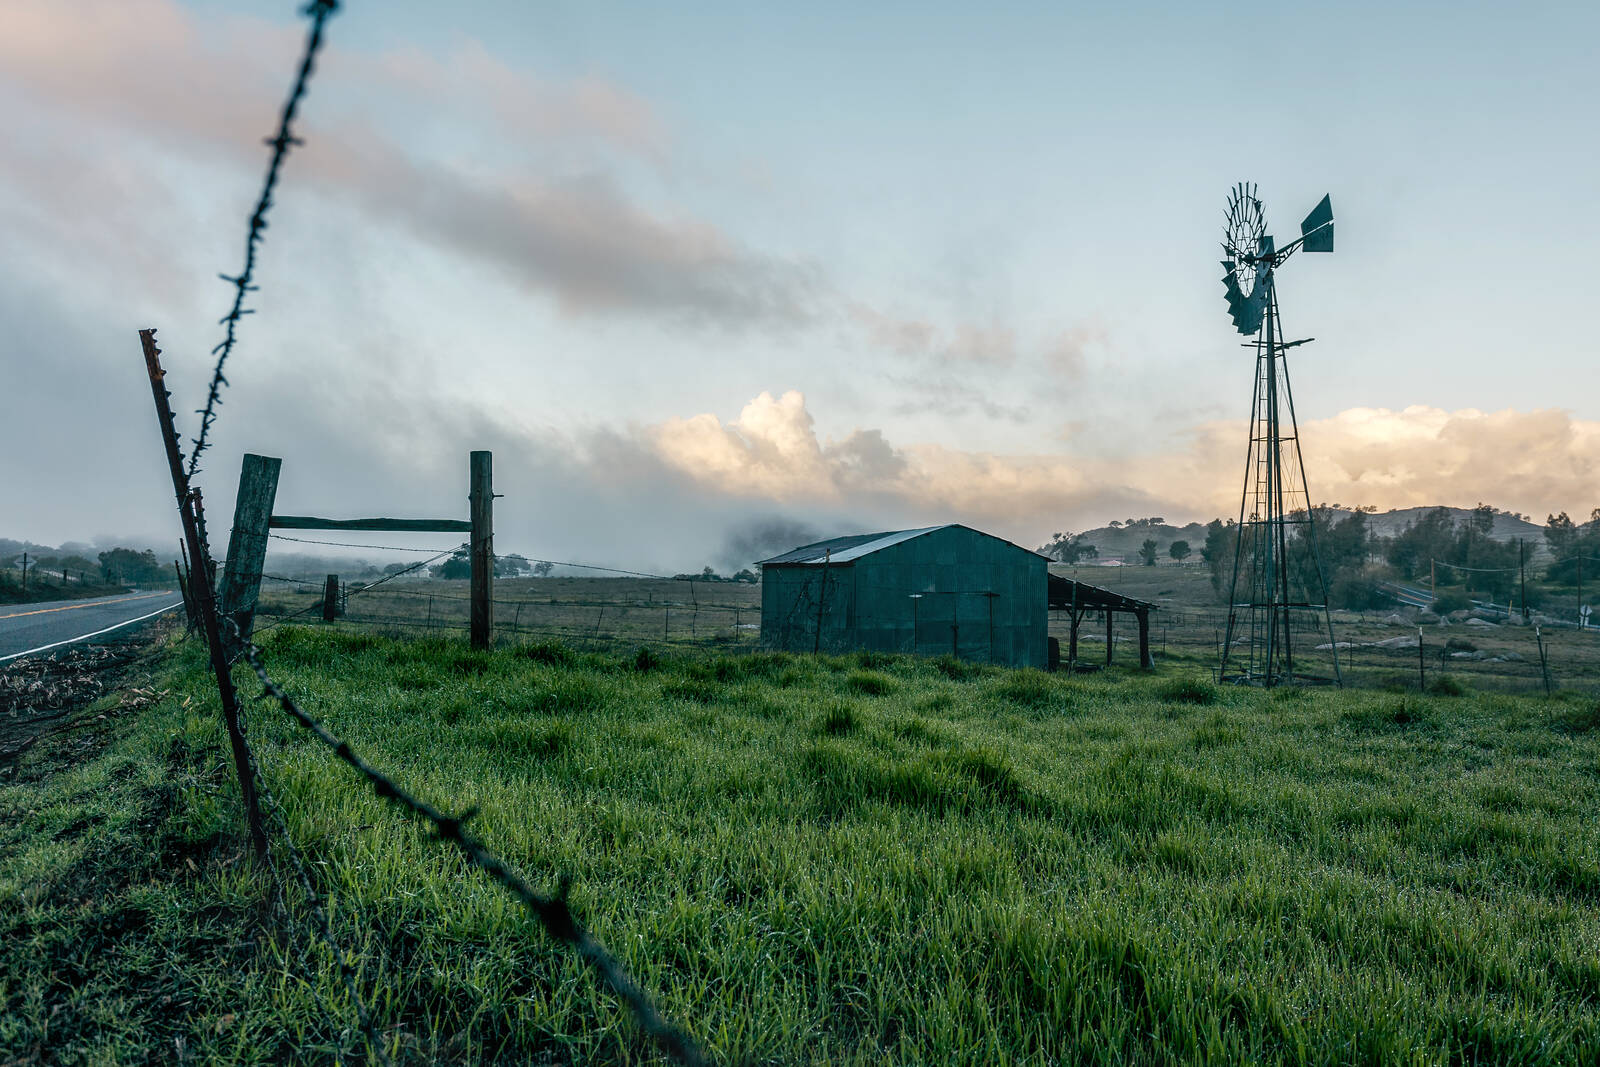 Barn and windmill of a farm seen through a fence at sunrise in Ballena in California. Credit: Mickey Strider/Loop Images/Universal Images Group via Getty Images